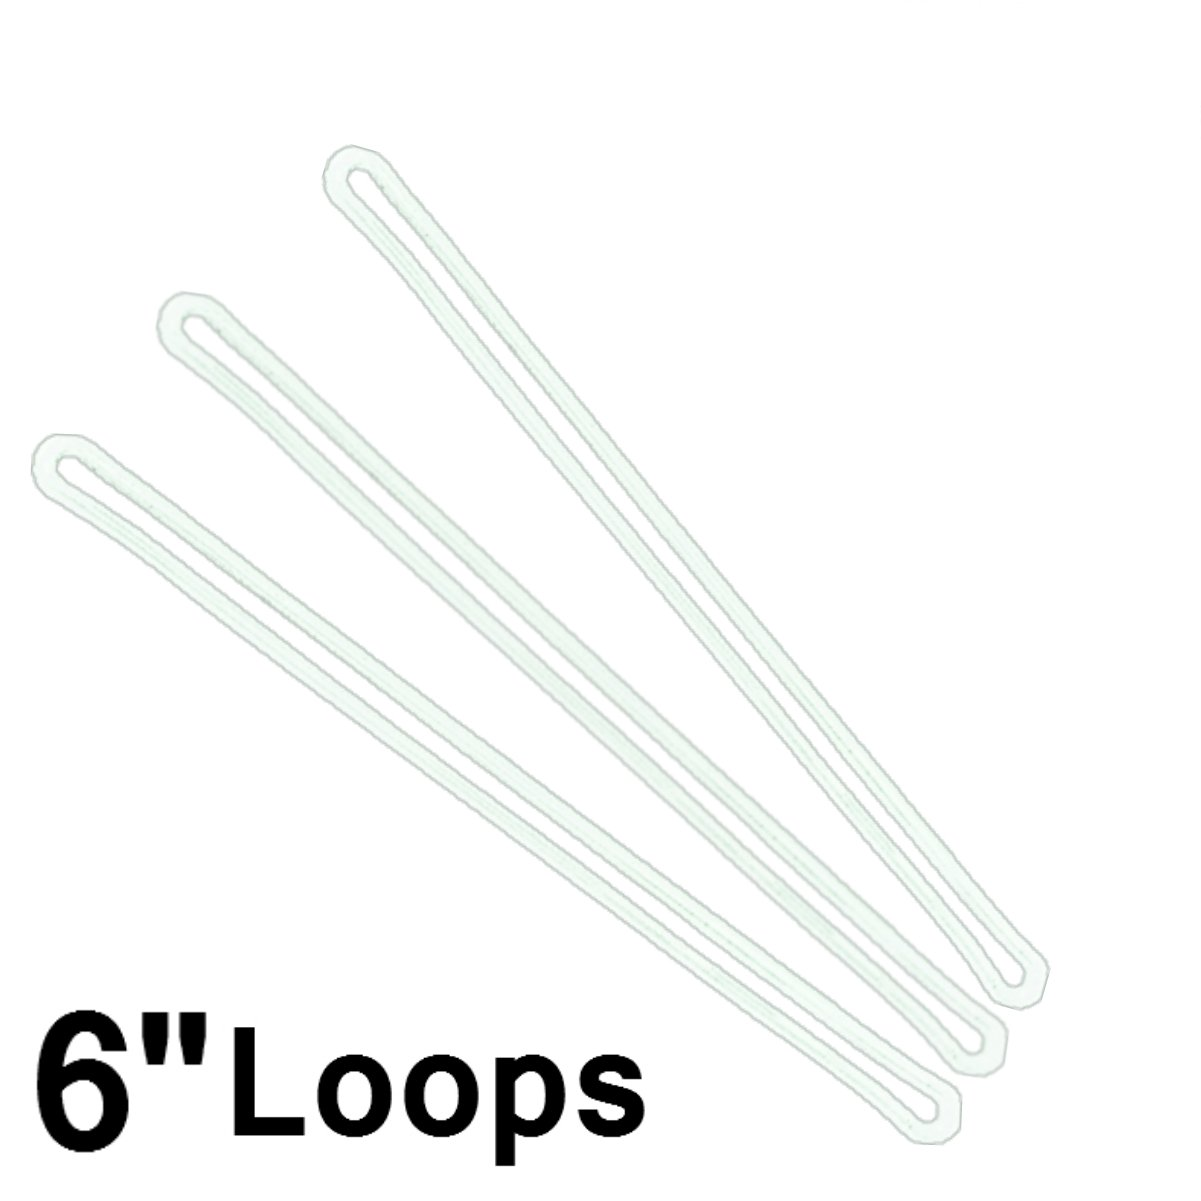 6 Inch Premium Clear Plastic Luggage Loop Straps / Worm Loops for Luggage Tags, by Specialist ID (500 Pack + Bonus)